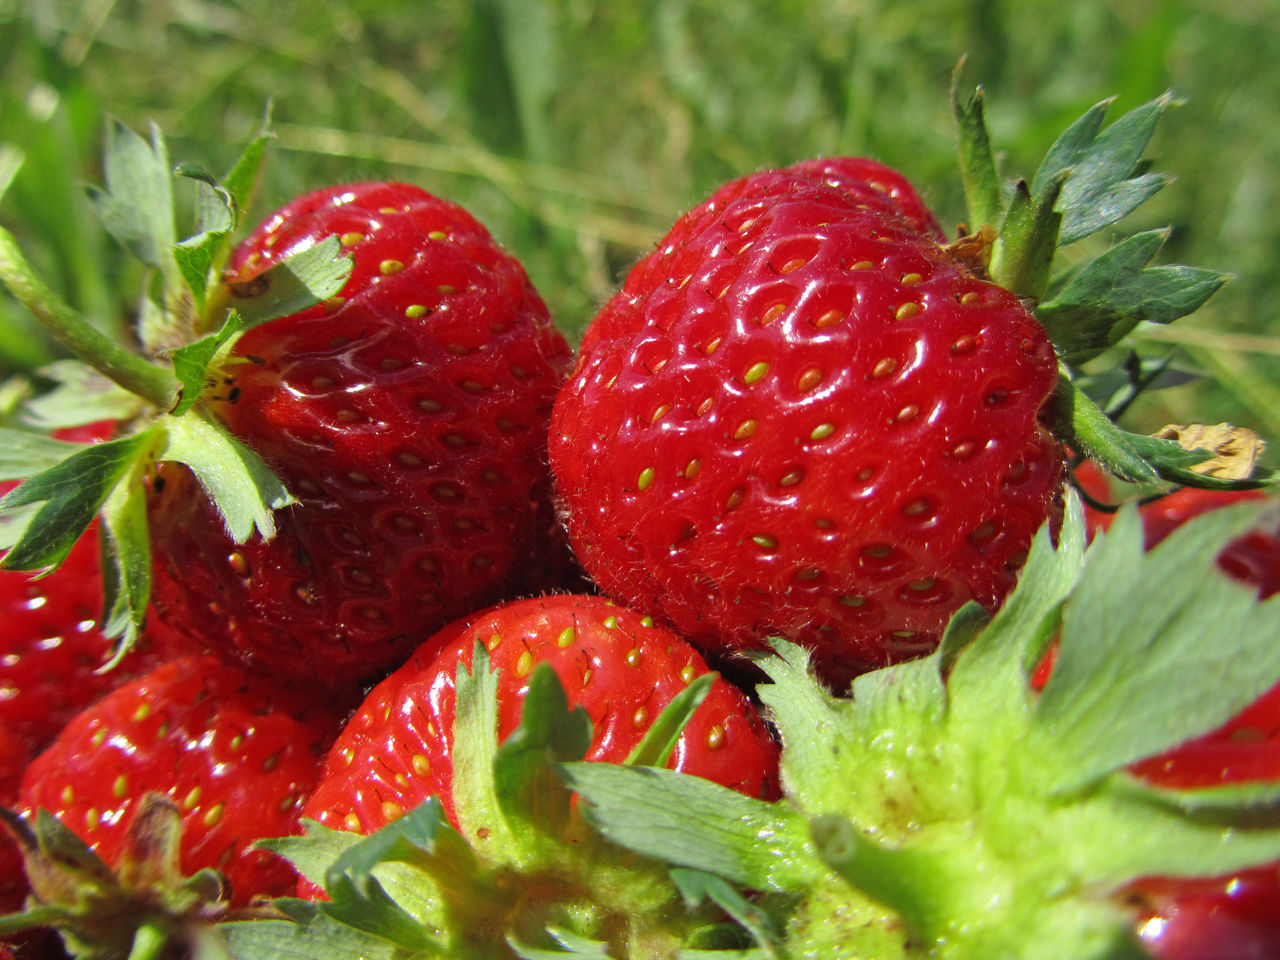 Strawberries. This picture is old and I have shared this on several sites. Red Freshness Fruit Healthy Eating Close-up Food Nature Outdoors Day Strawberries Agriculture Summer Growth Fresh Strawberries Sweet Garden Best Things In Life Are Free Best Sweet Warmness